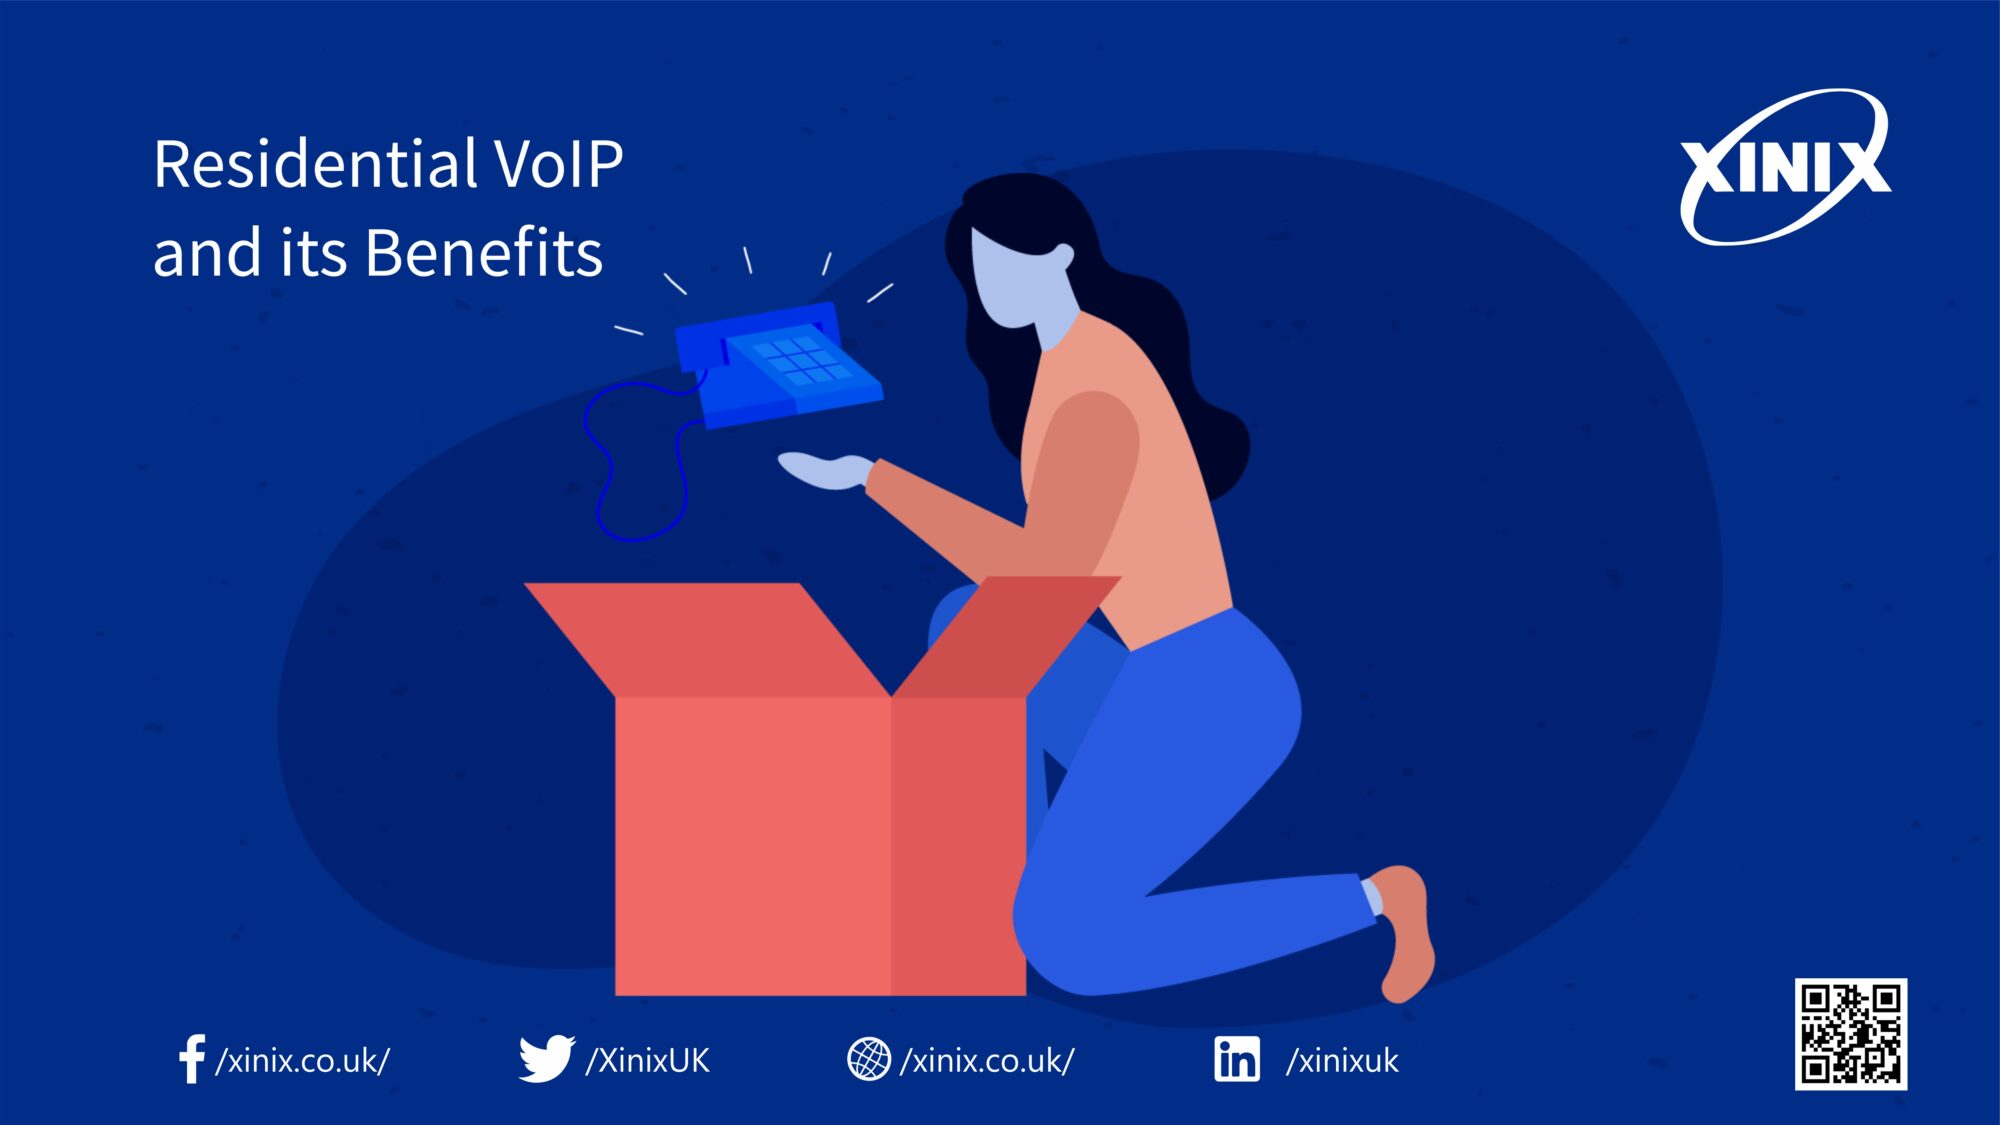 Residential VoIP and its Benefits